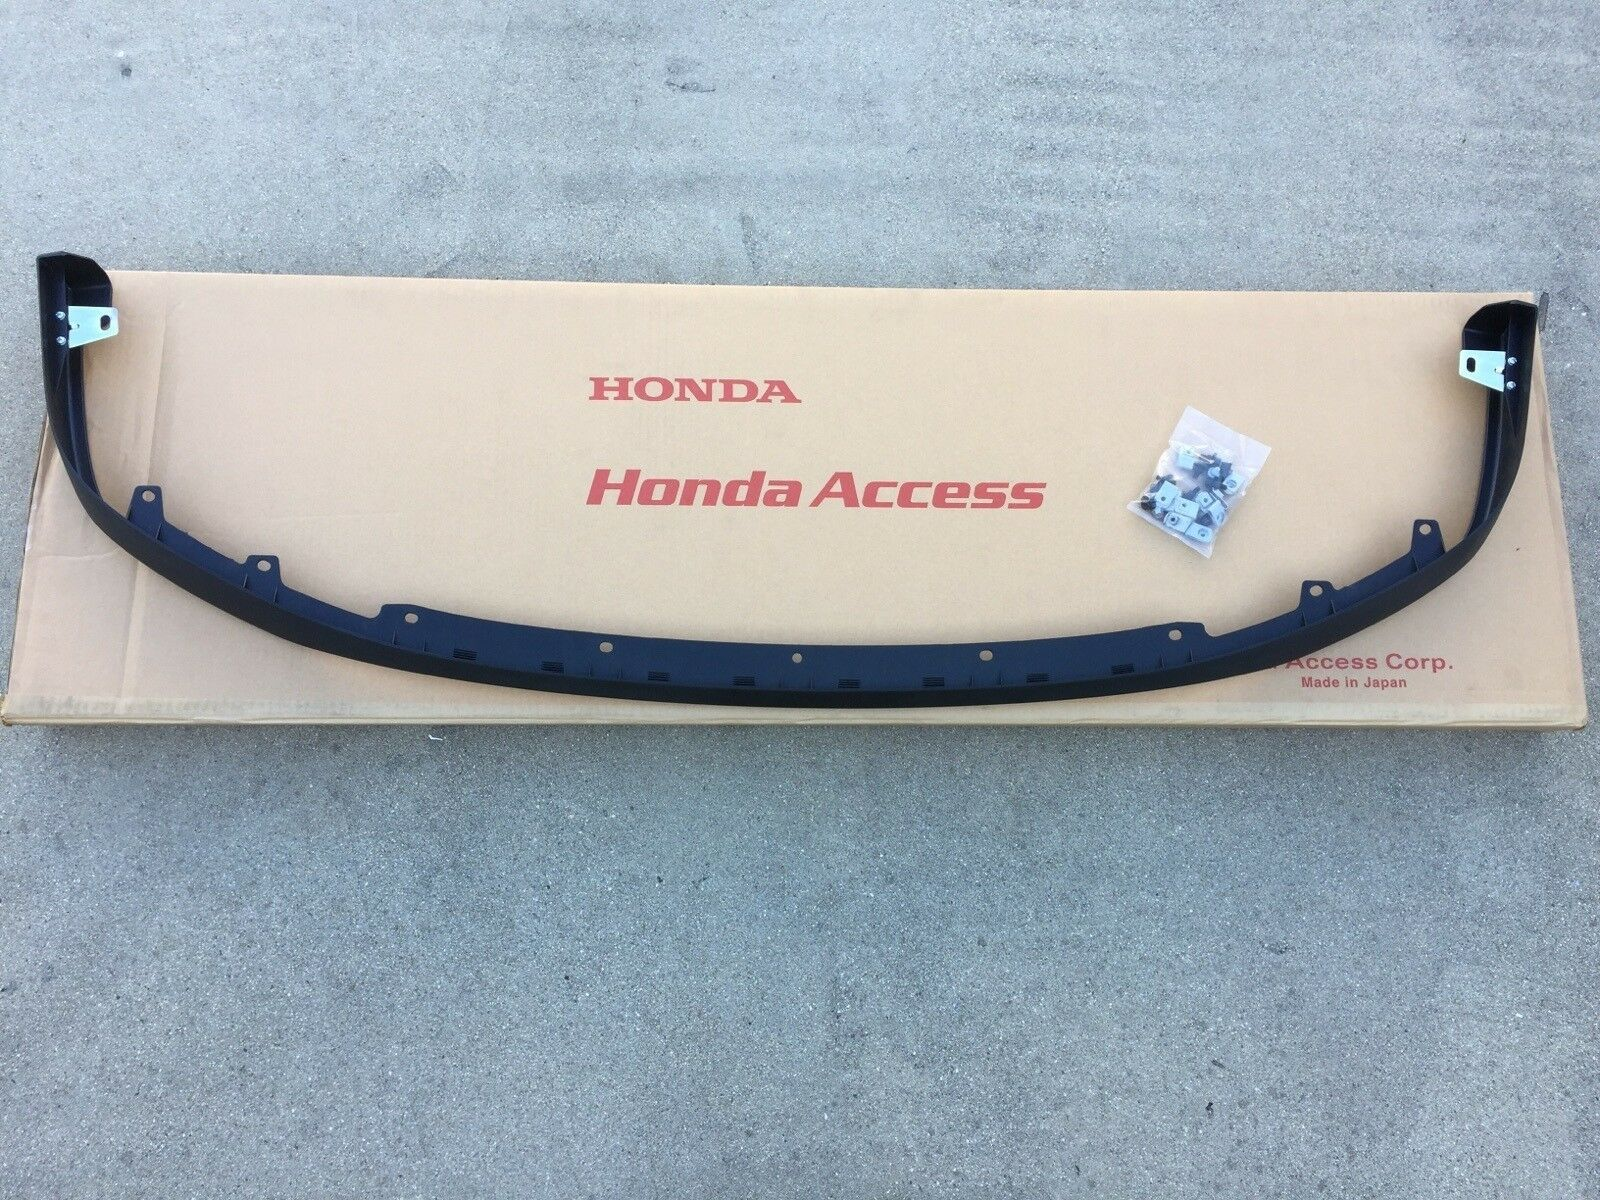 Jdm genuine honda 96 98 civic sir front lip discontinued item jdm genuine honda 96 98 civic sir front lip discontinued item publicscrutiny Choice Image